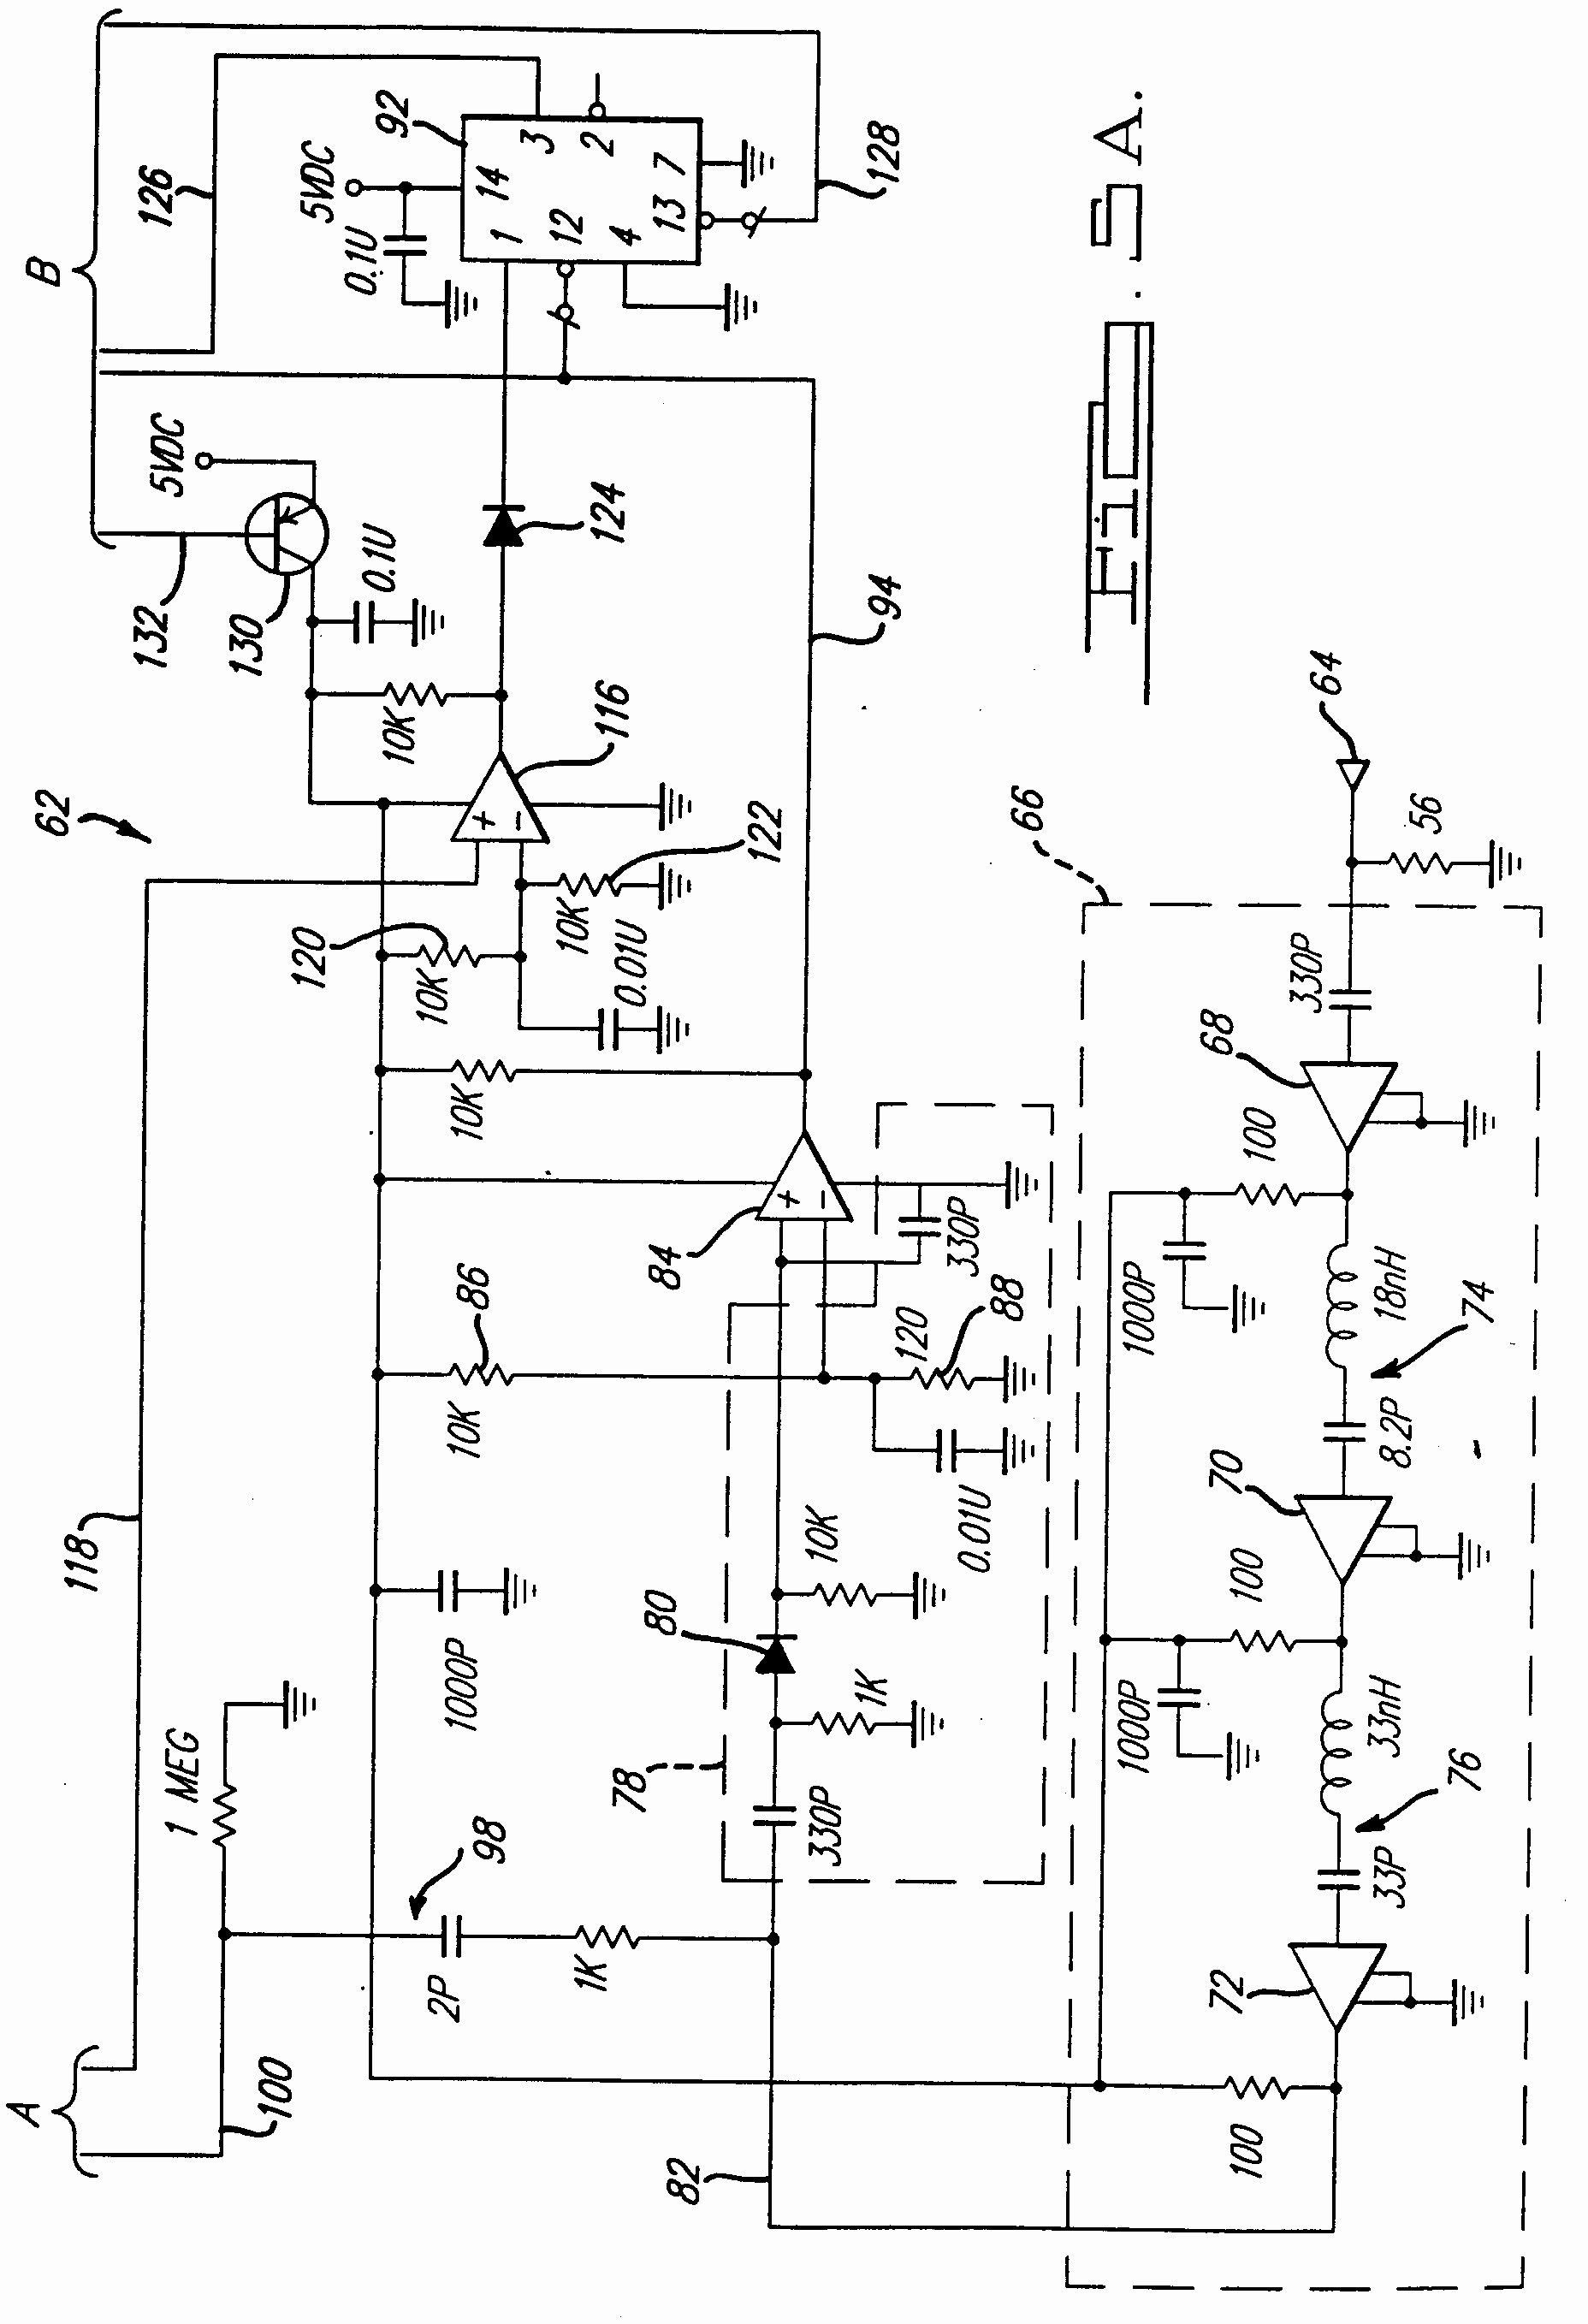 Unique Wiring Diagram Garage Door Sensor Diagram Diagramsample Diagramtemplate Wiri Liftmaster Garage Door Liftmaster Garage Door Opener Garage Door Safety